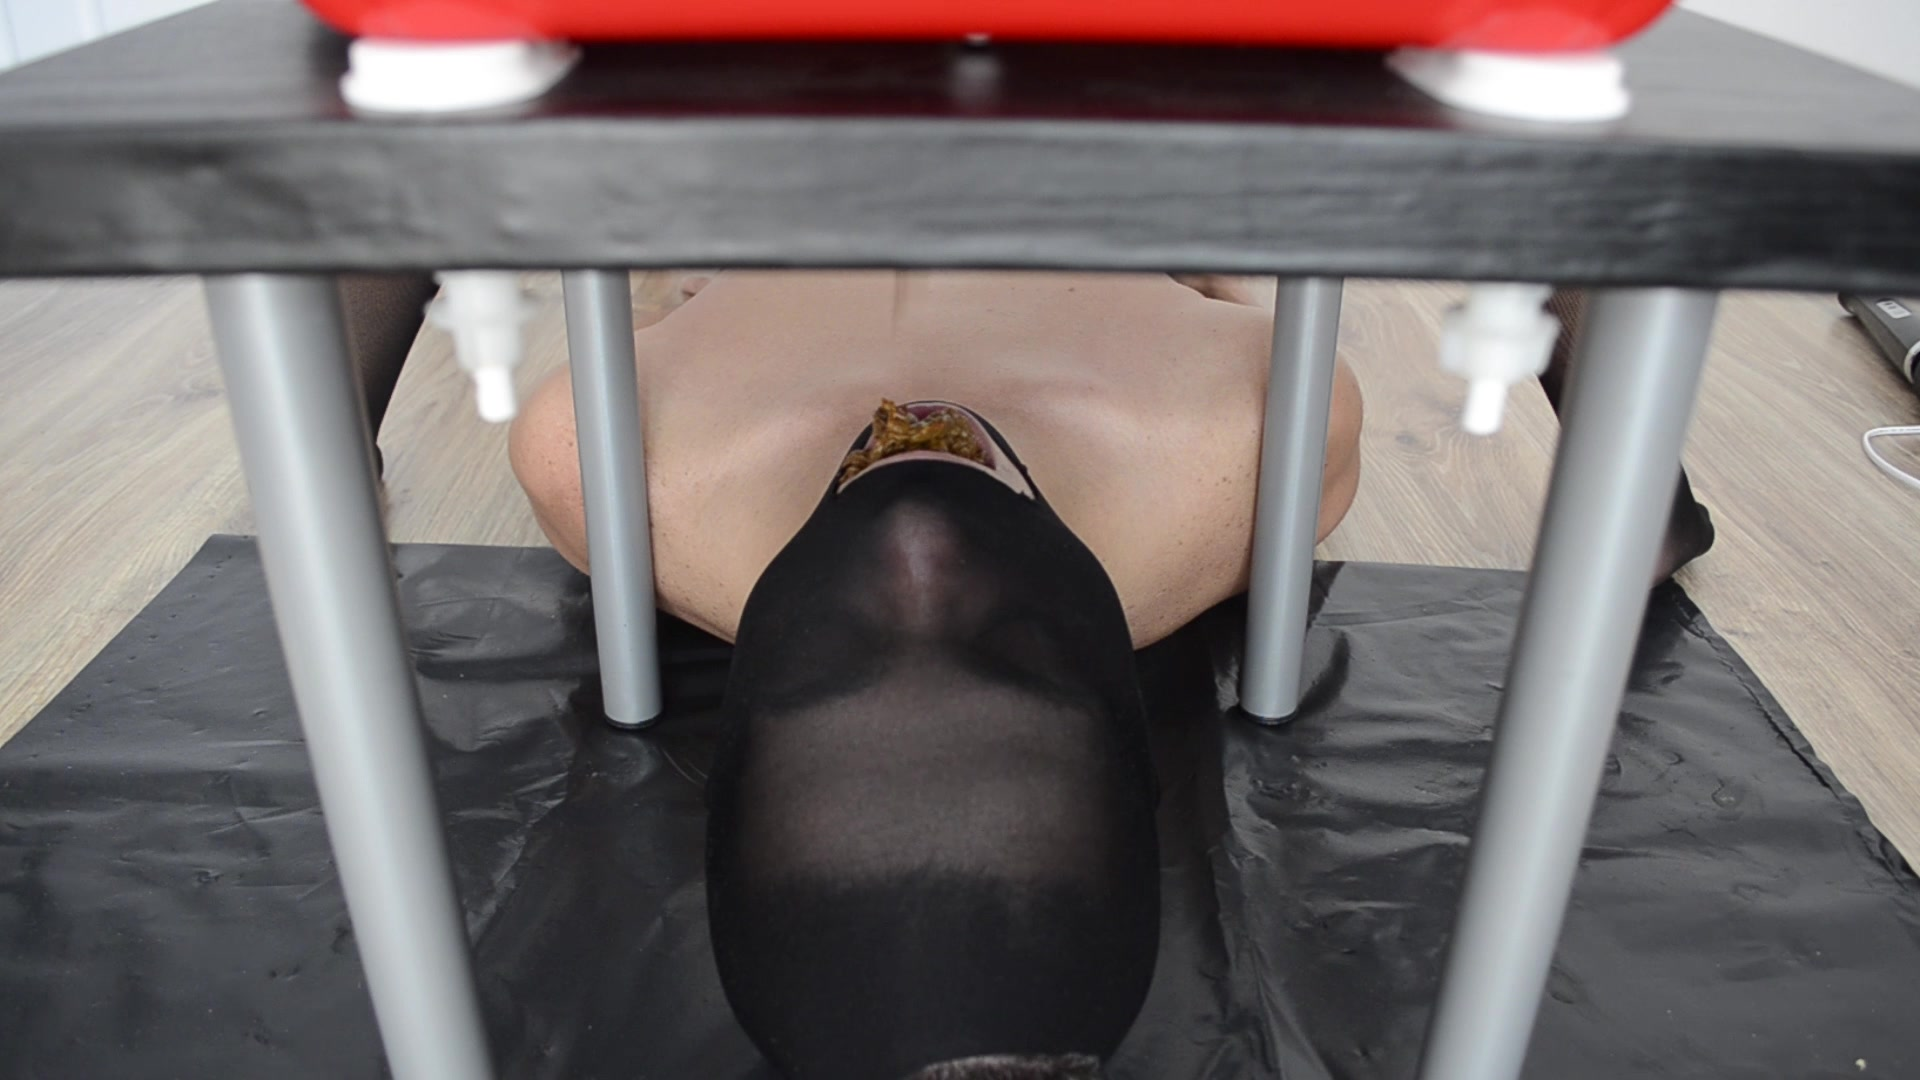 Mistress_Anna_-_Full_mouth_with_creamy_shit.00000.jpg